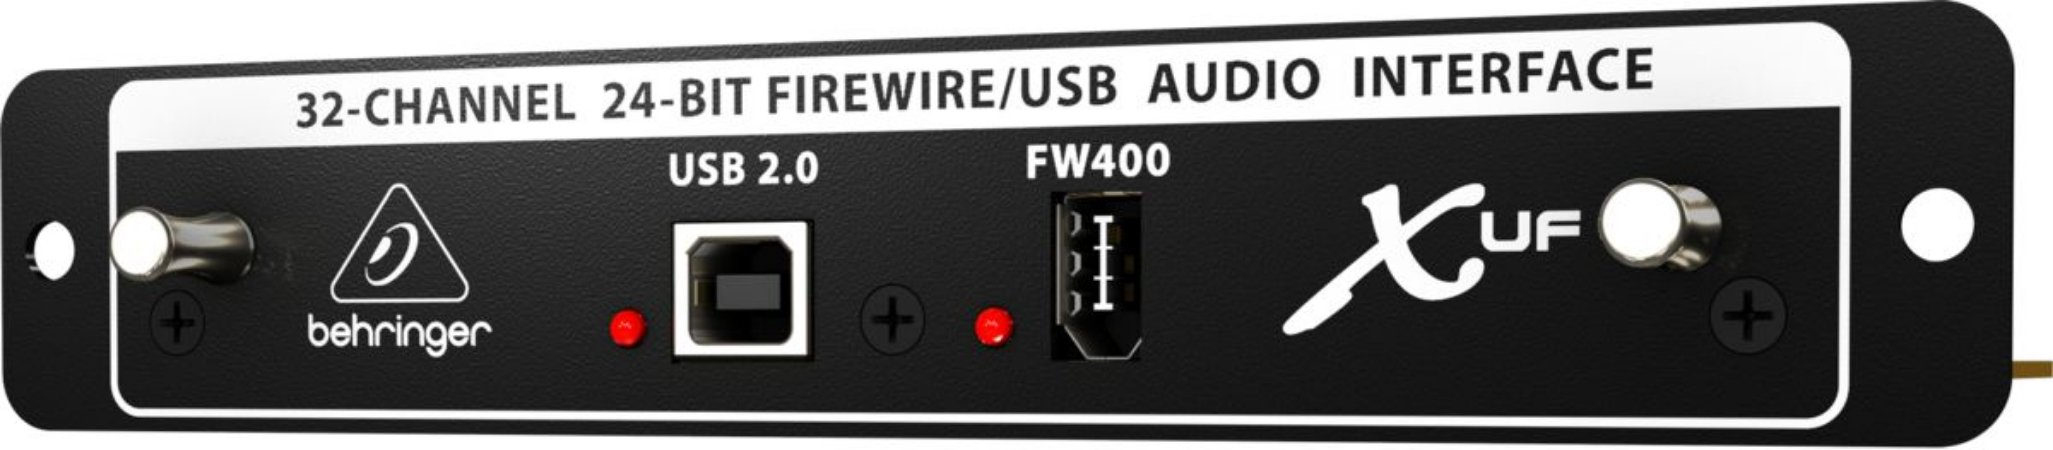 Interface Firewire para x32 - Behringer